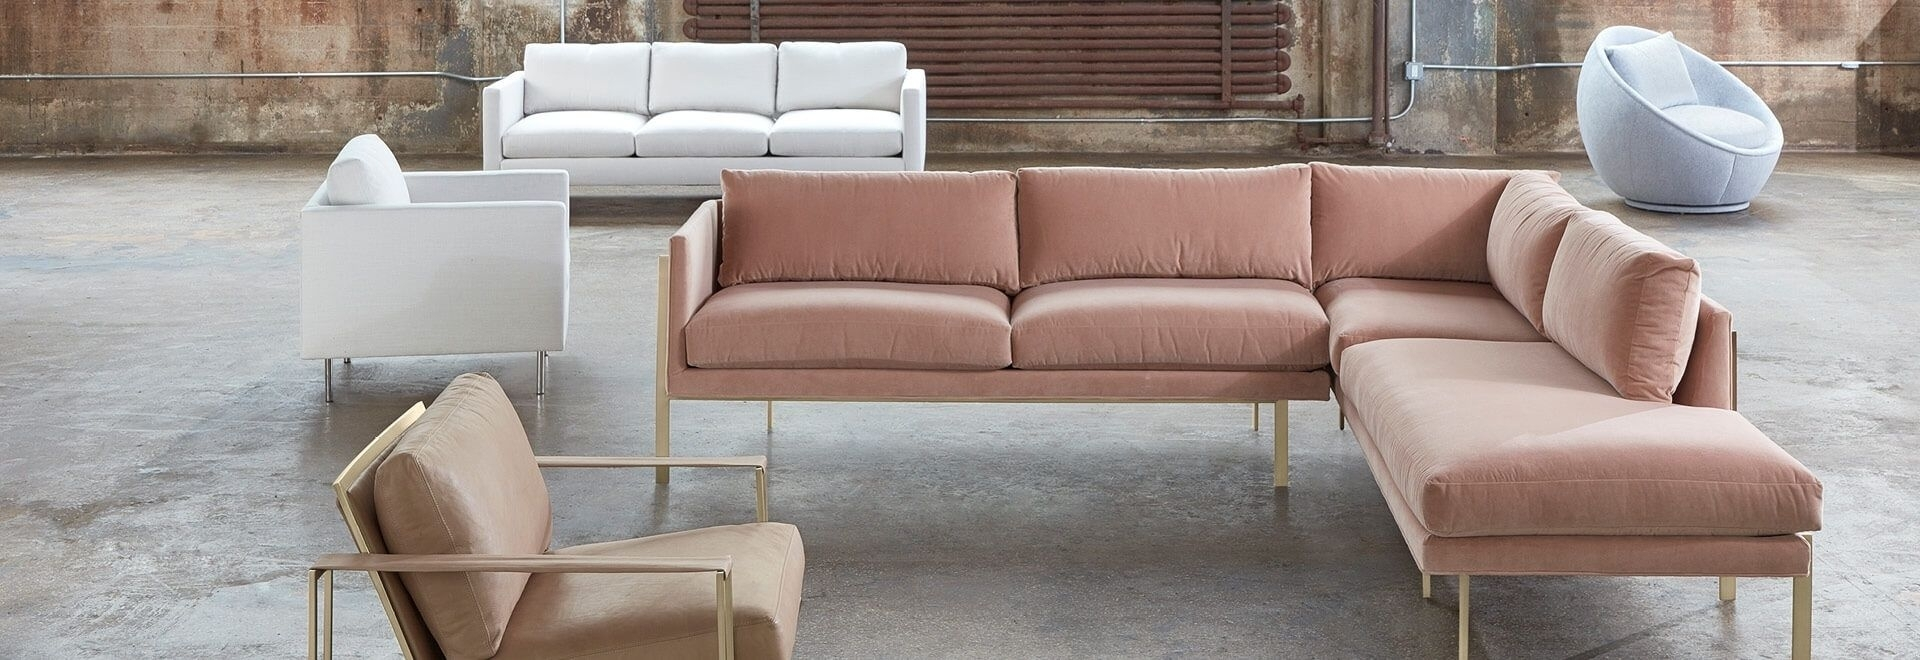 Modern Sectional Sofas For Apartments At Abc Home & Carpet Within Harper Down 3 Piece Sectionals (Image 18 of 25)